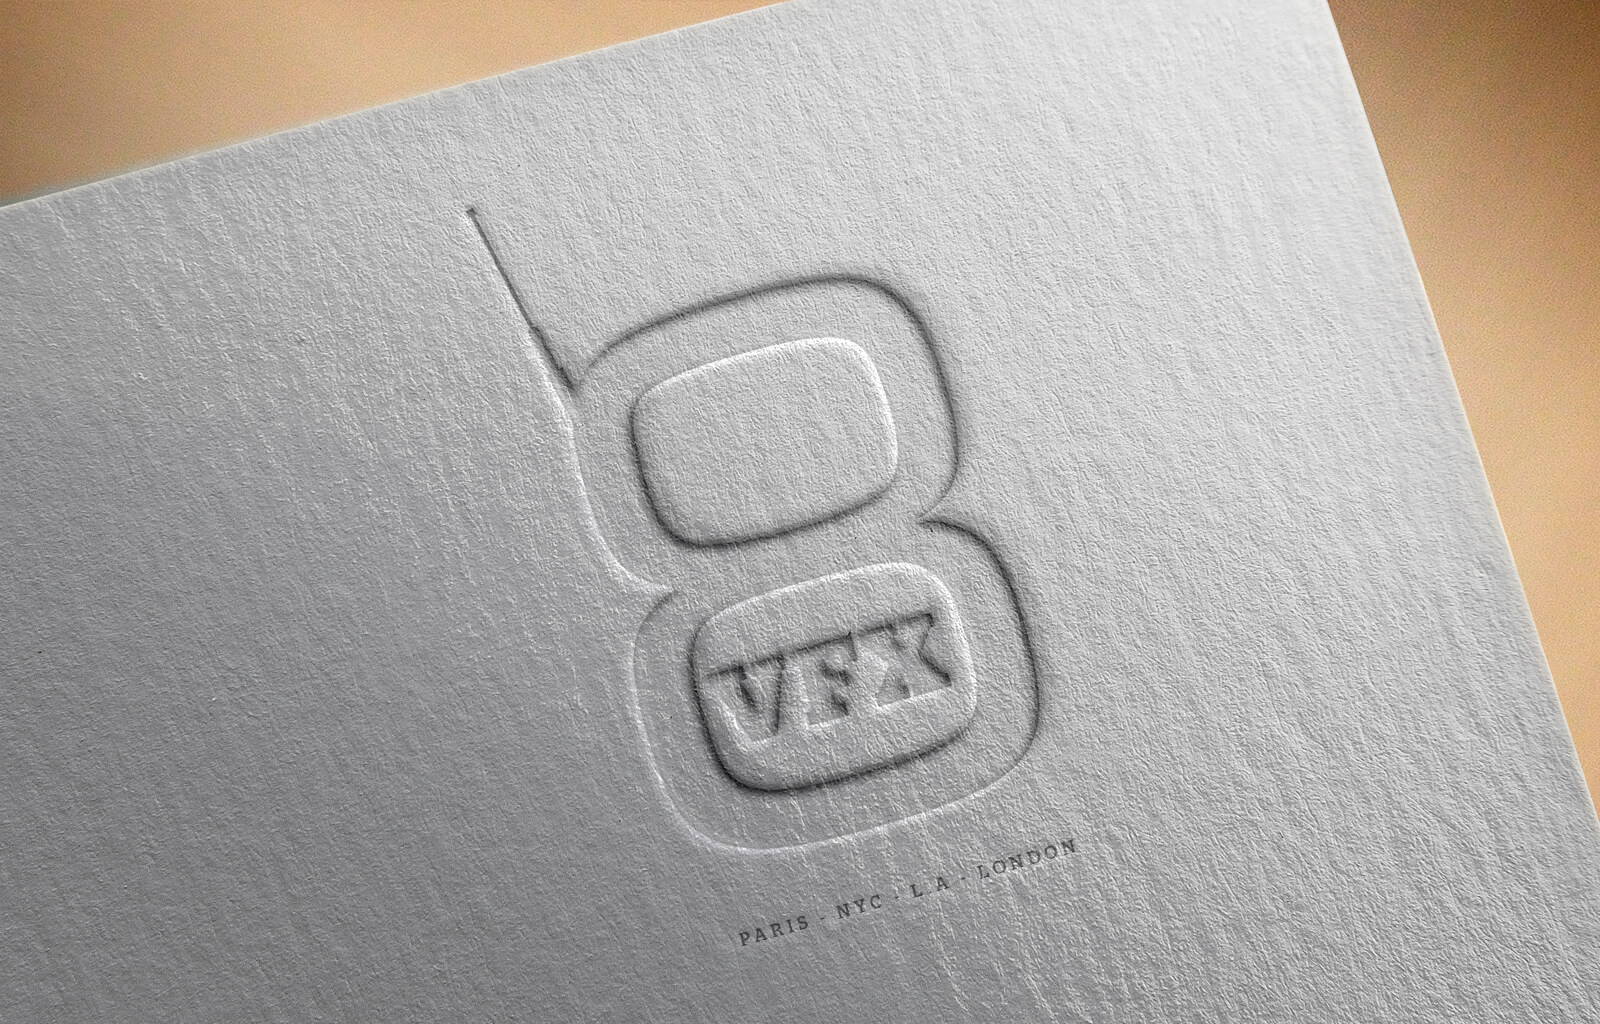 01-logo-mockup-by-punedesign